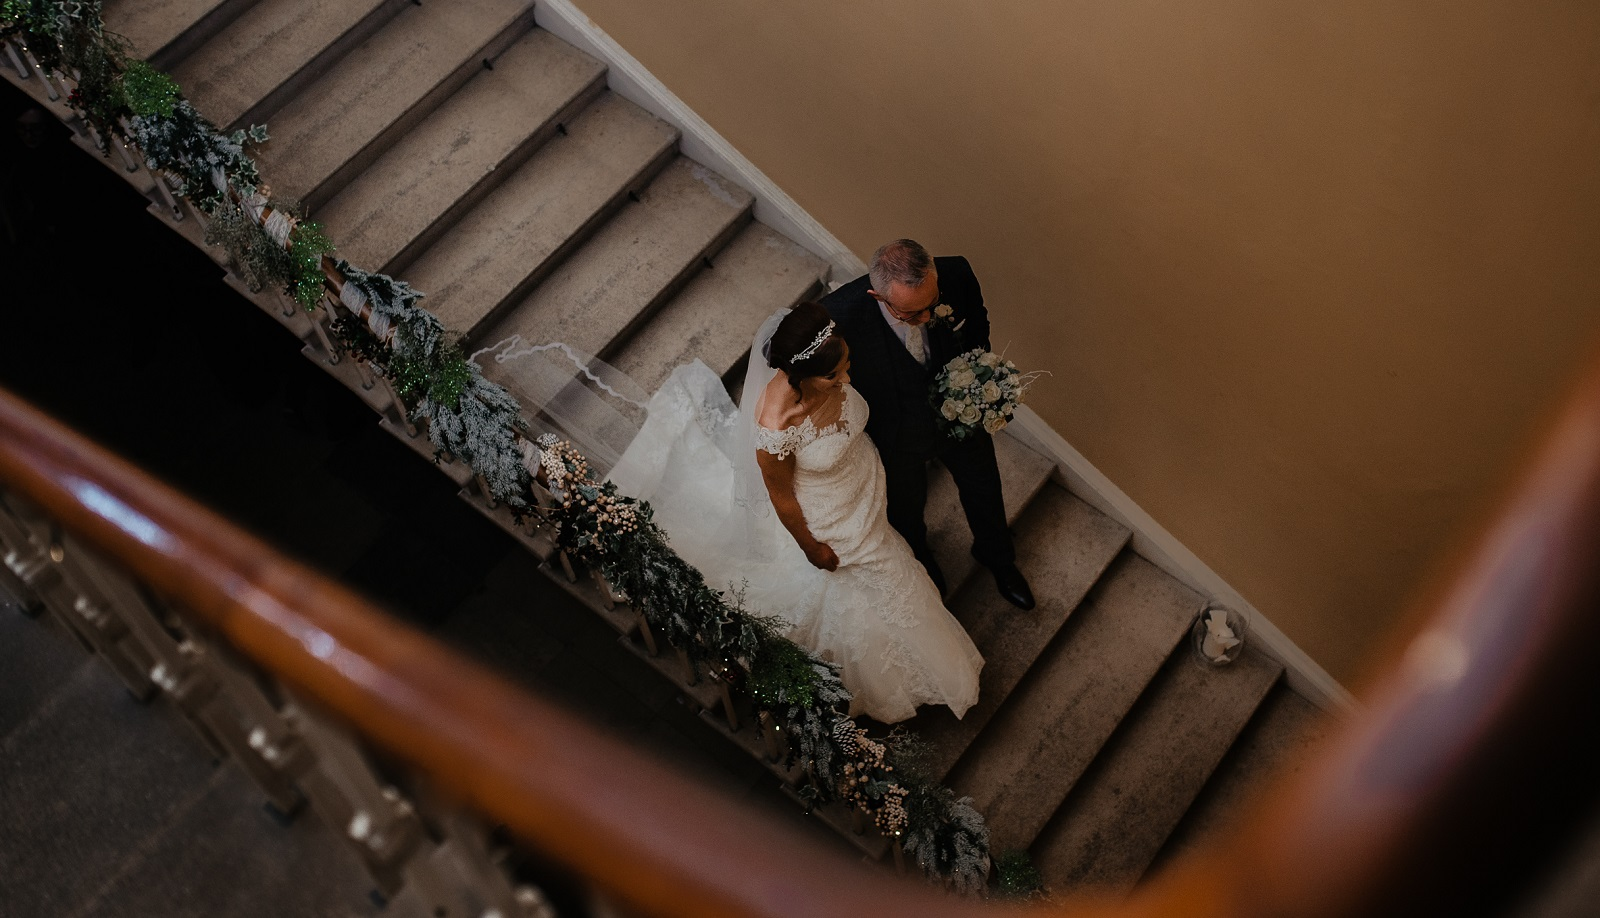 Irish Castle Wedding Photographer - destination wedding in Ireland - Top photographer